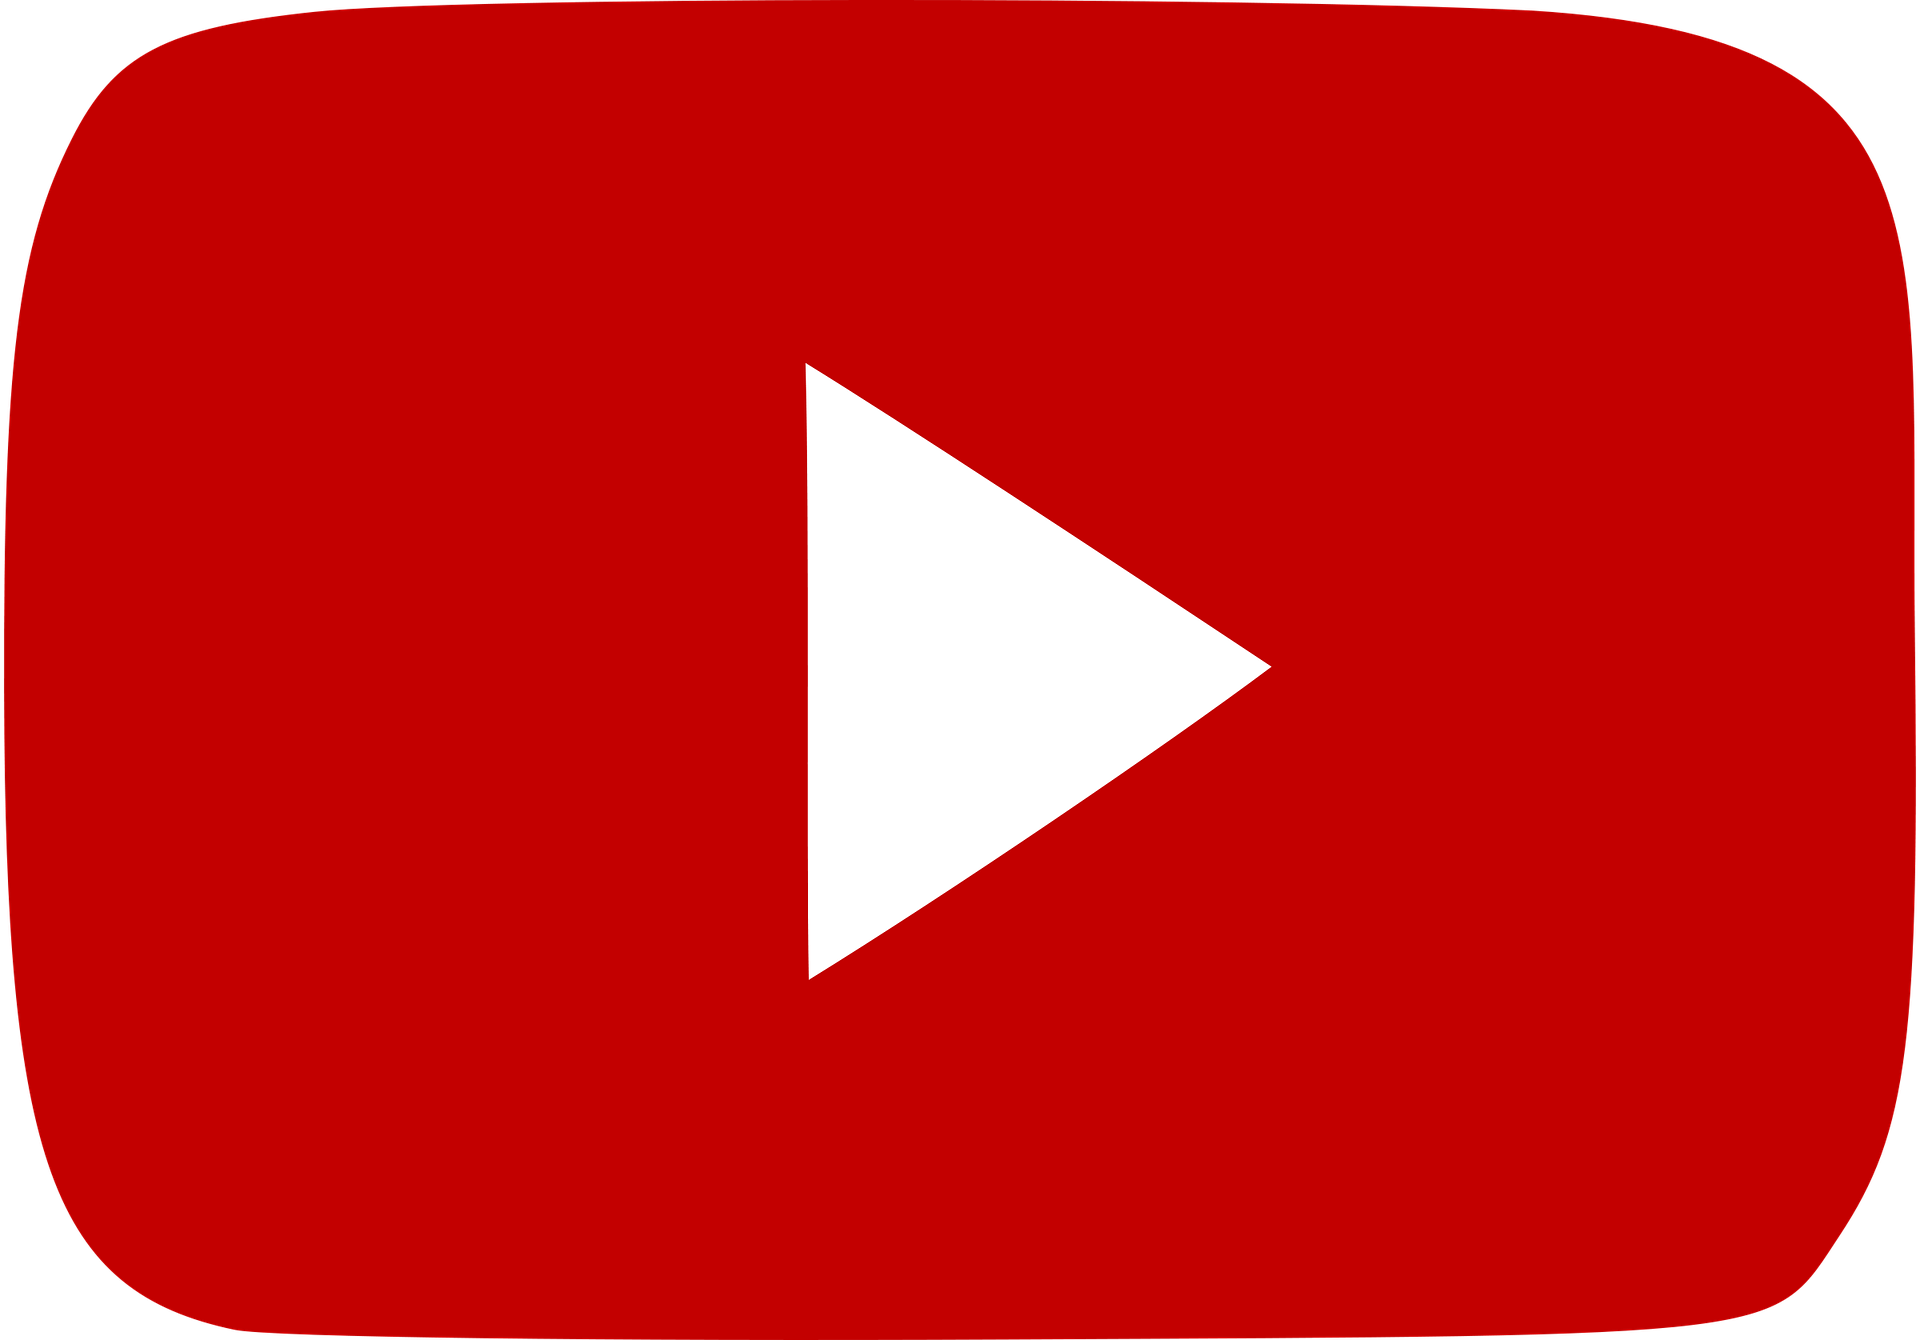 Icon Property of  YouTube